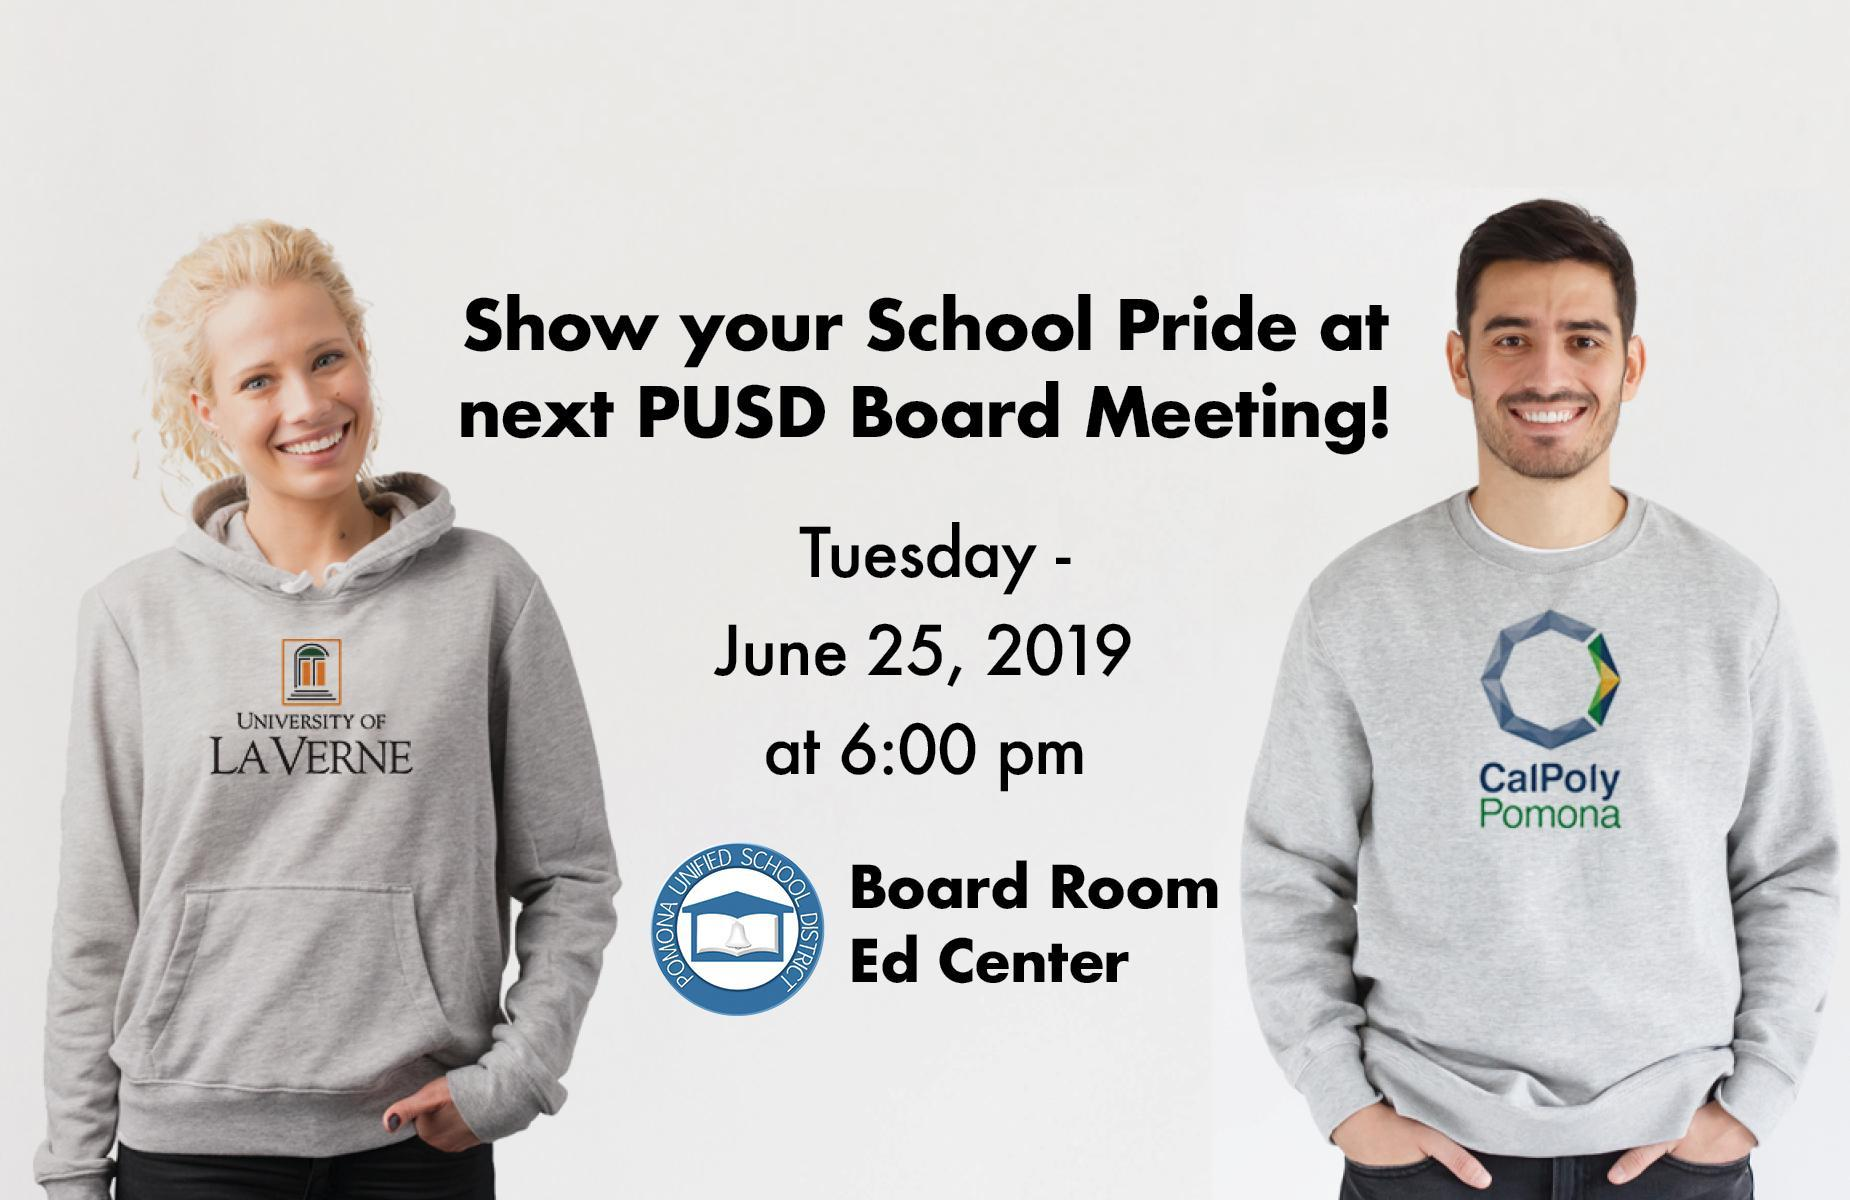 Show your school pride at next PUSD Board Meeting